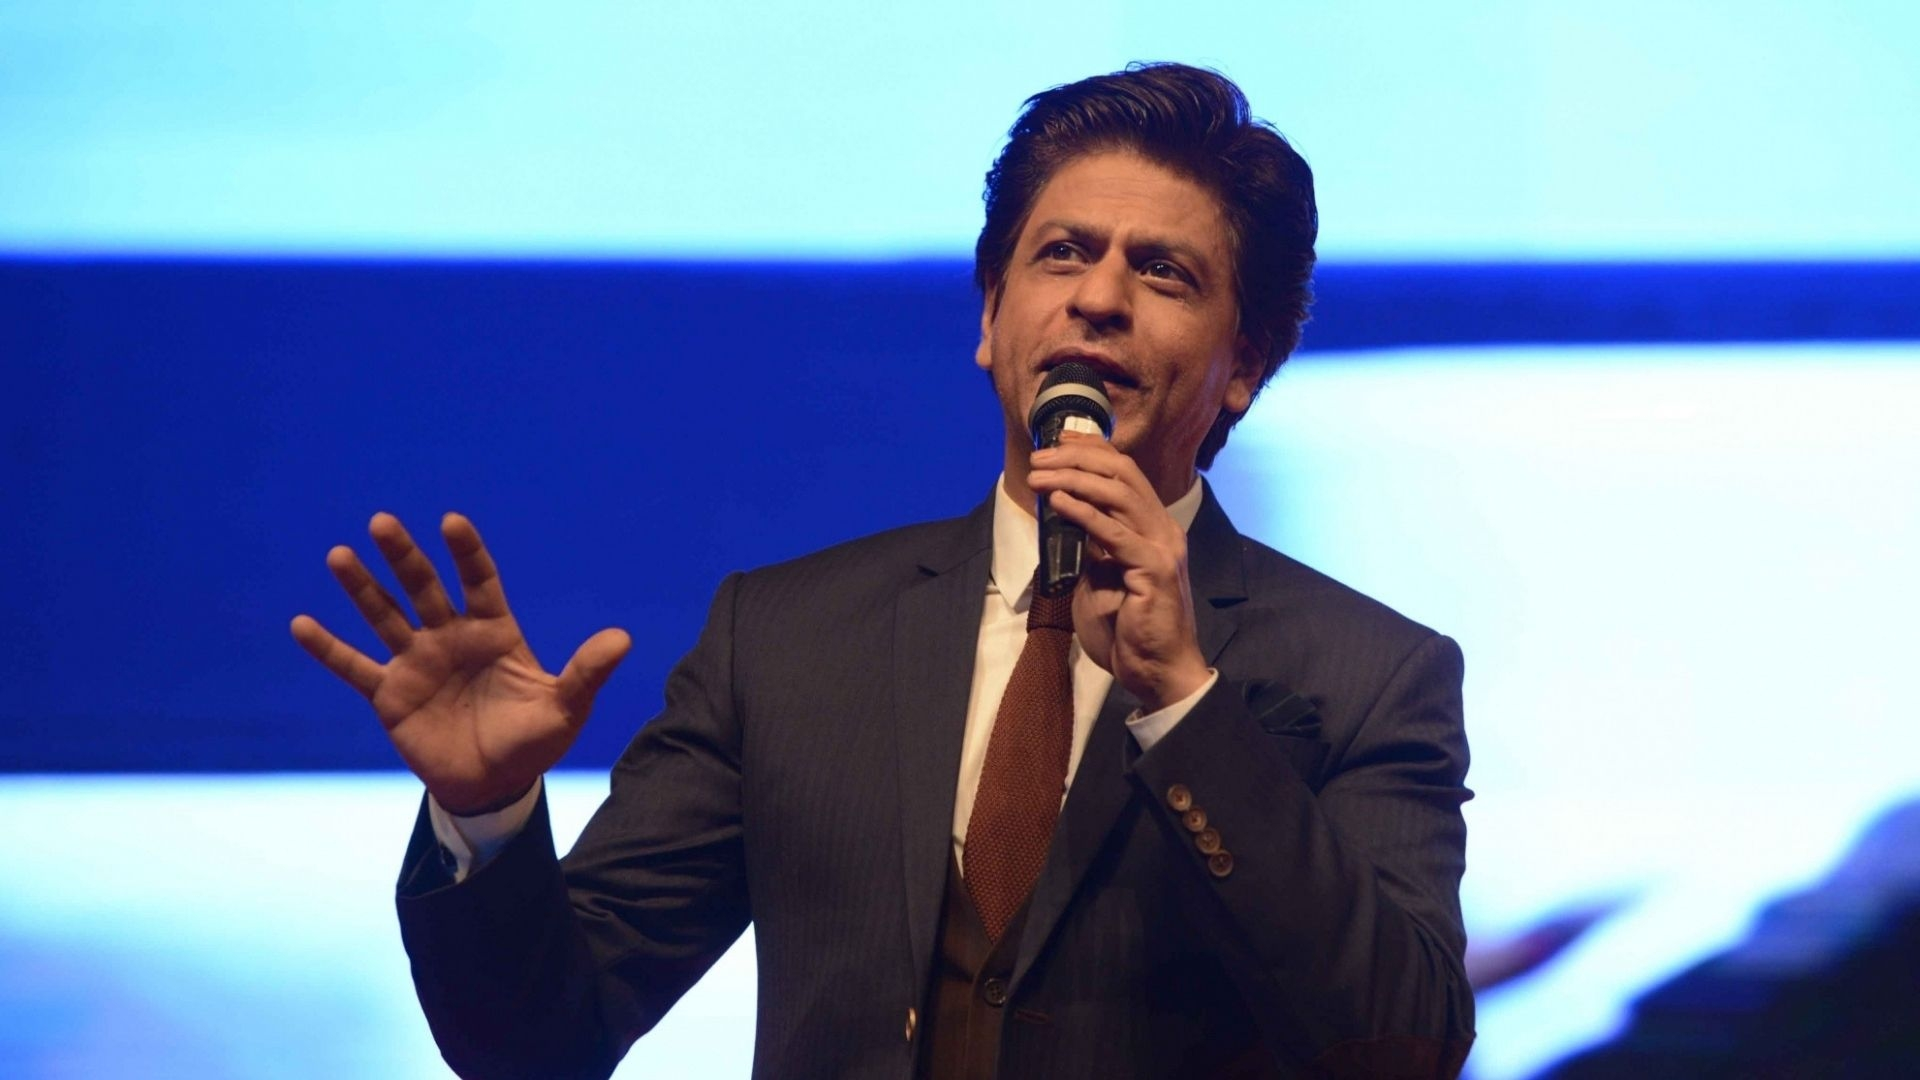 SRK's Take on Nationalism in This 90s Interview Holds Even Today